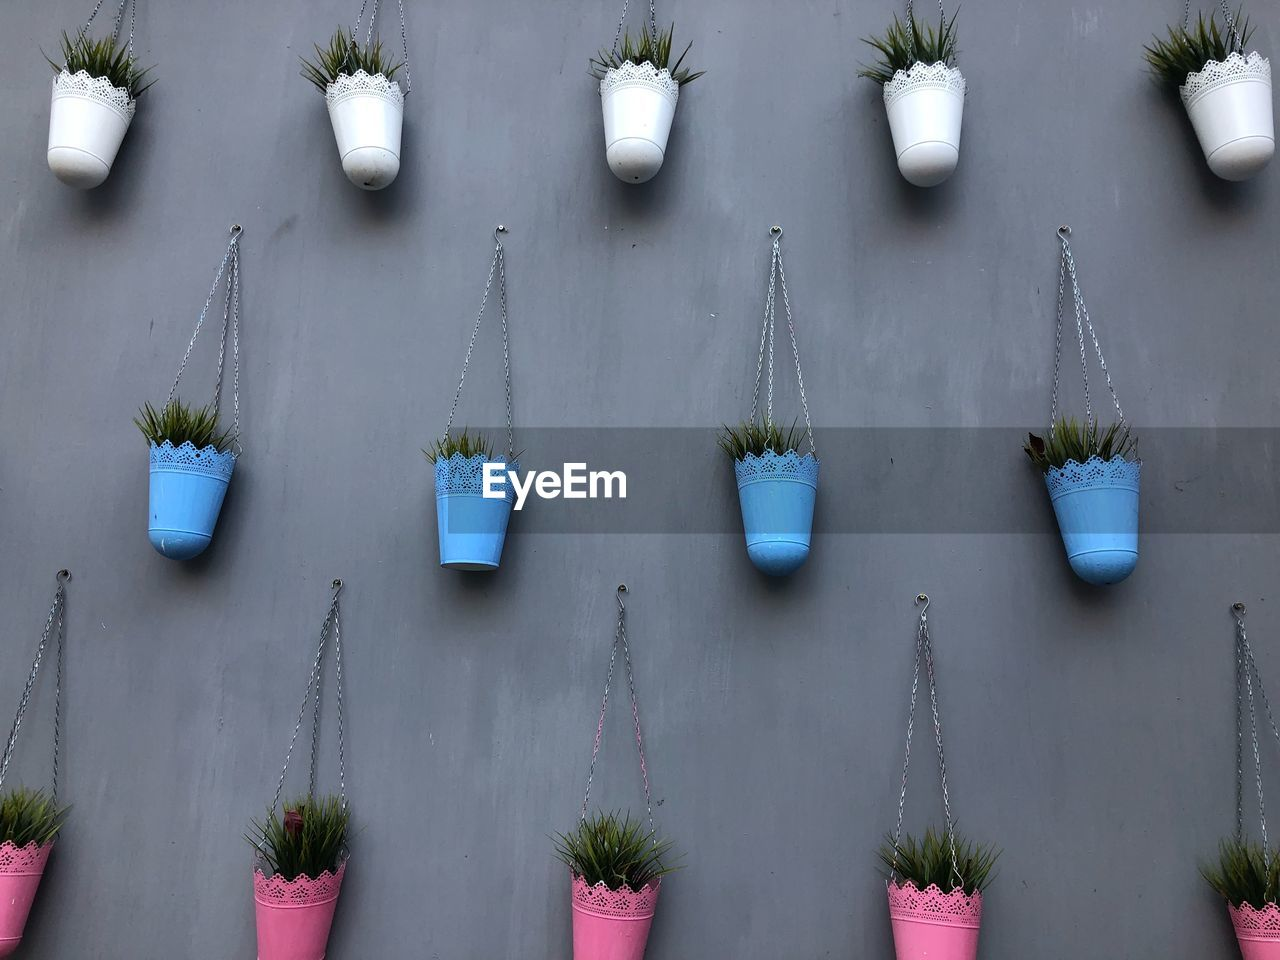 side by side, plant, in a row, no people, growth, day, nature, hanging, potted plant, architecture, outdoors, built structure, repetition, green color, wall - building feature, flowering plant, flower, freshness, decoration, building exterior, flower pot